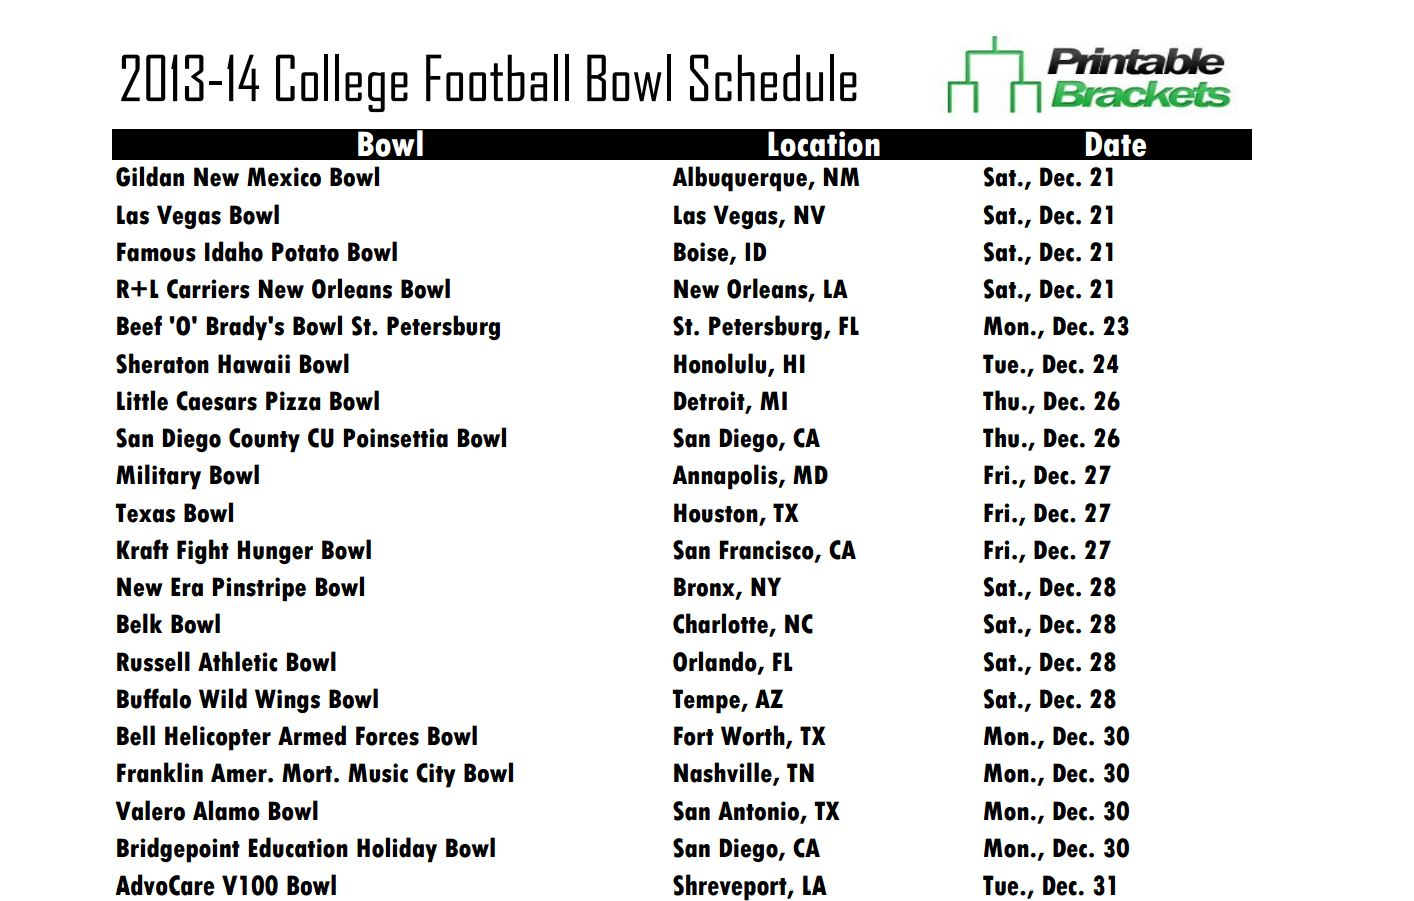 cfp games ncaa college schedule